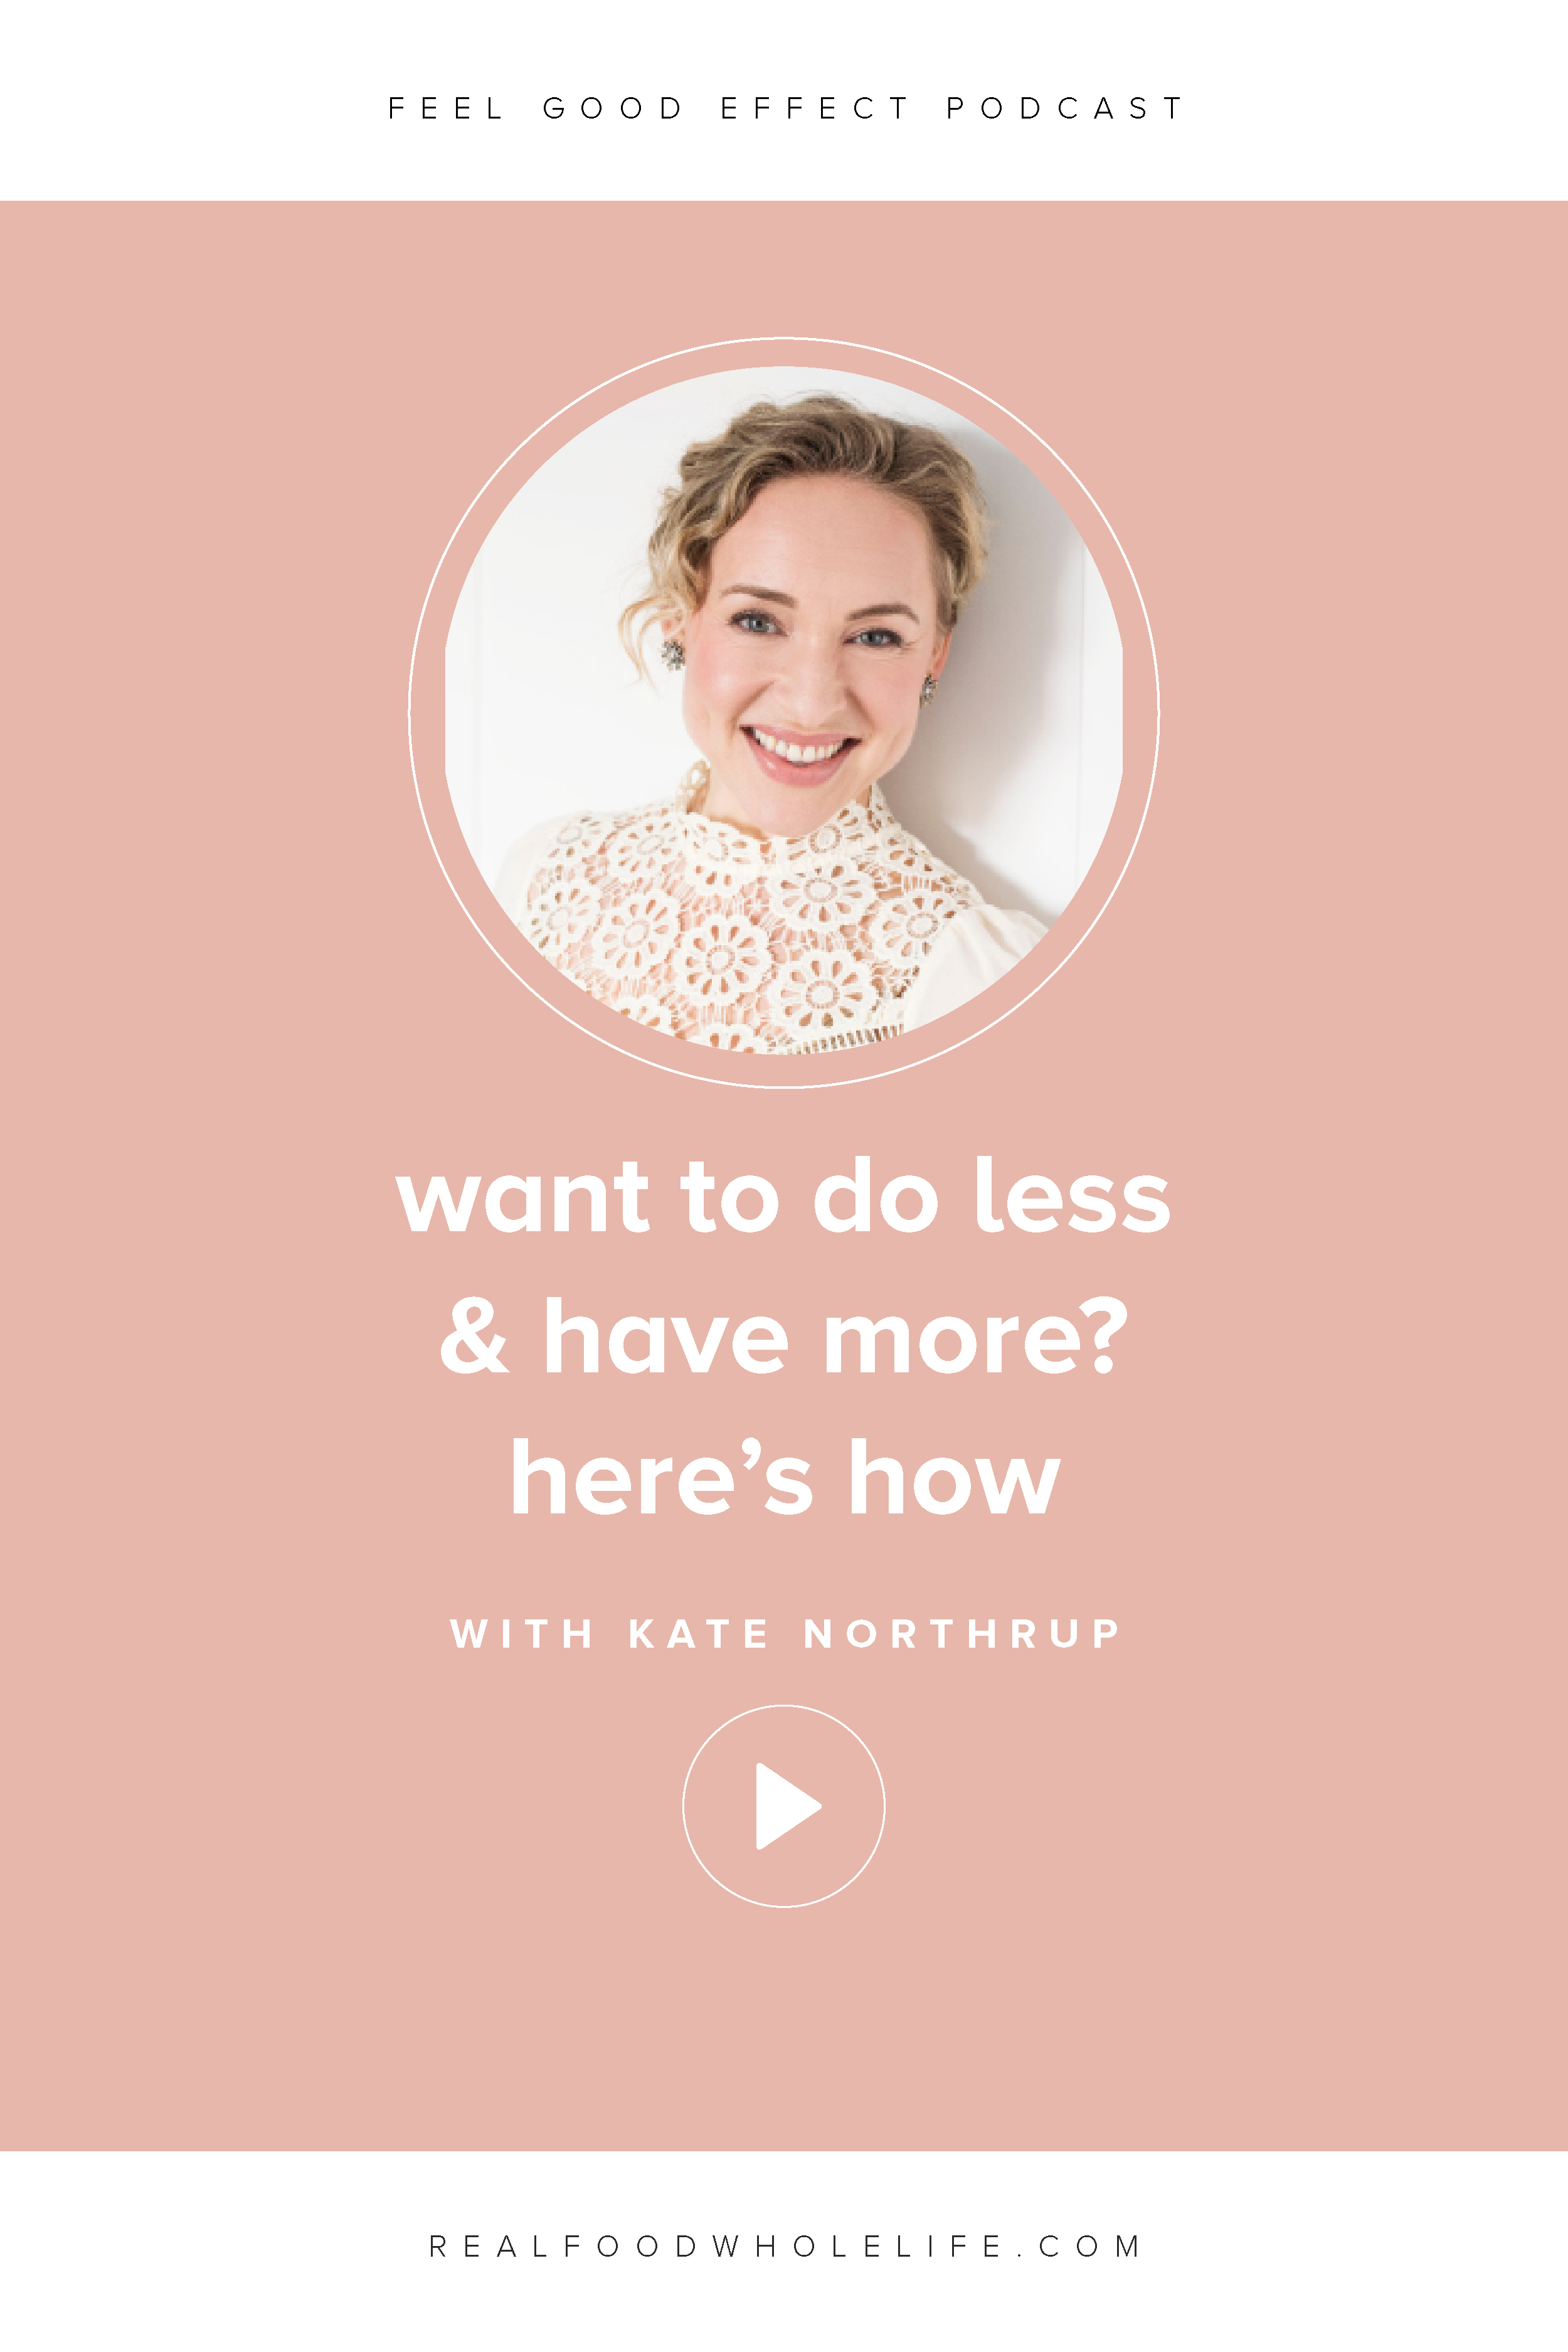 How to do more and have more with Kate Northrup on the Feel Good Effect Podcast. #realfoodwholelife #feelgoodeffect #podcast #productivity #purpose #goals